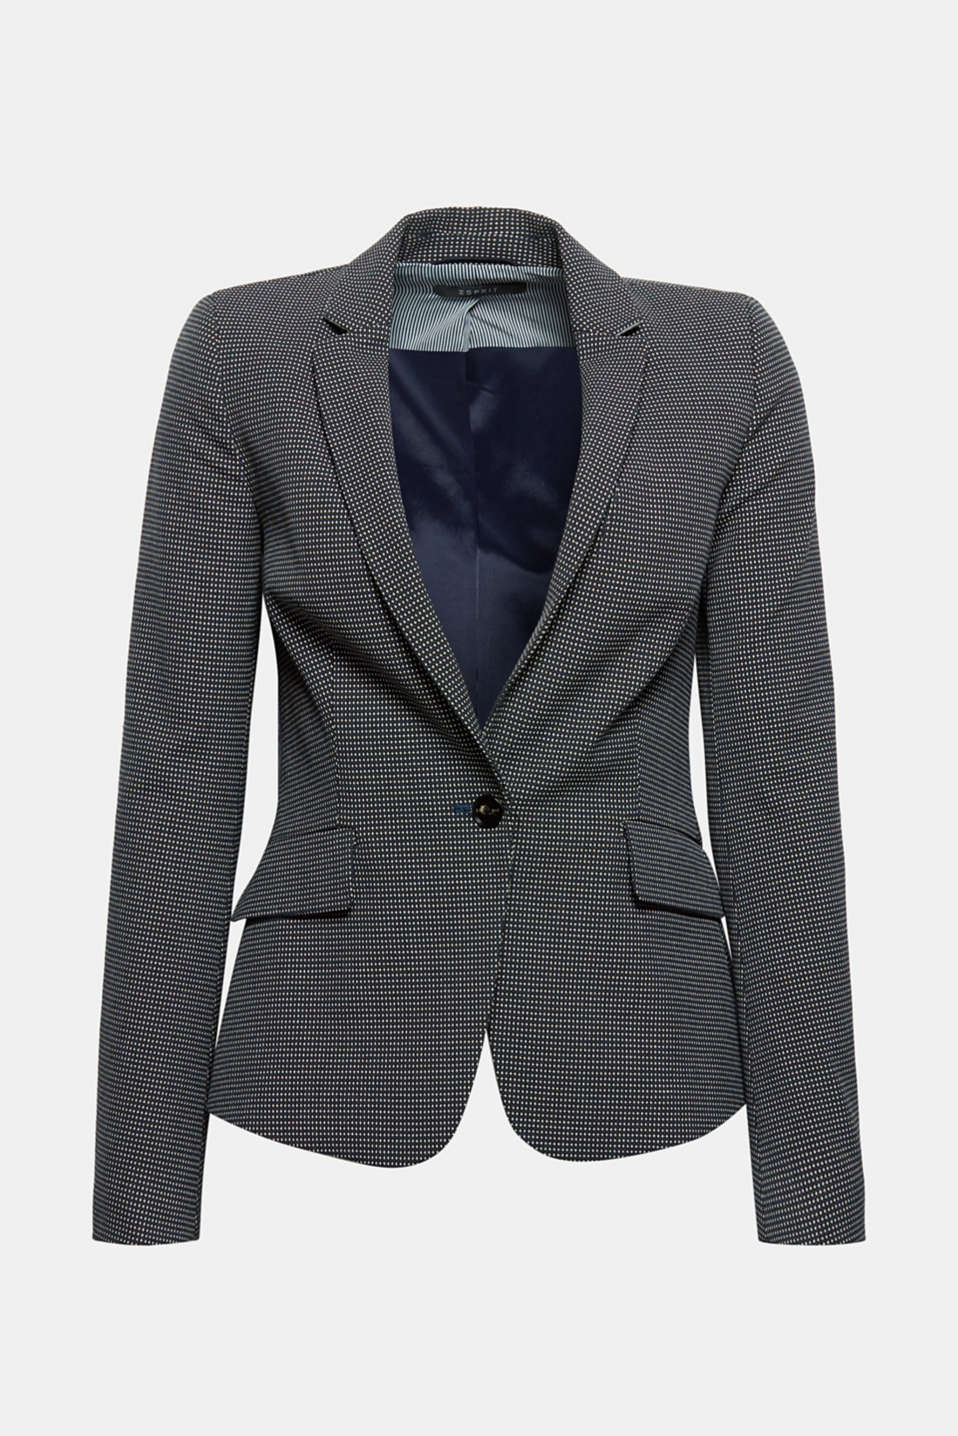 The fine texture makes this figure-hugging, comfy and stretchy 1-button blazer look absolutely stunning!